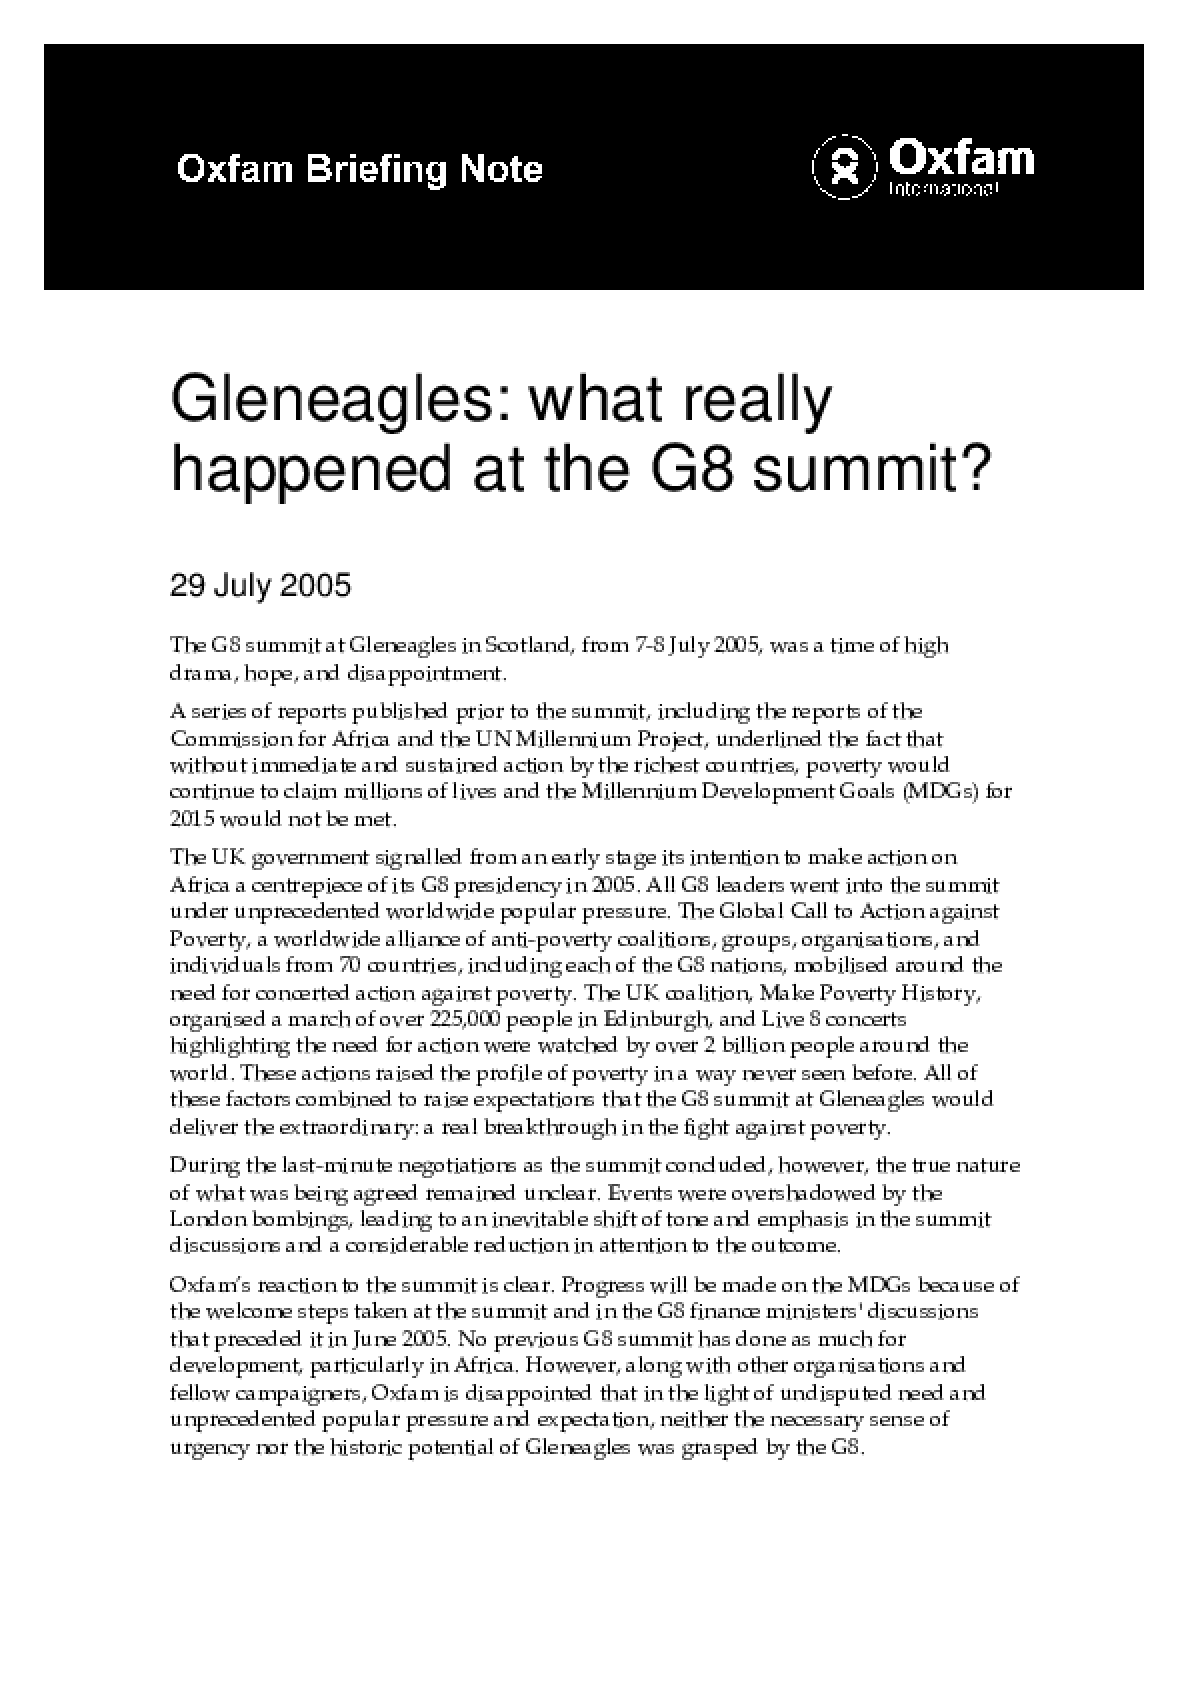 Gleneagles: What Really Happened at the G8 Summit?